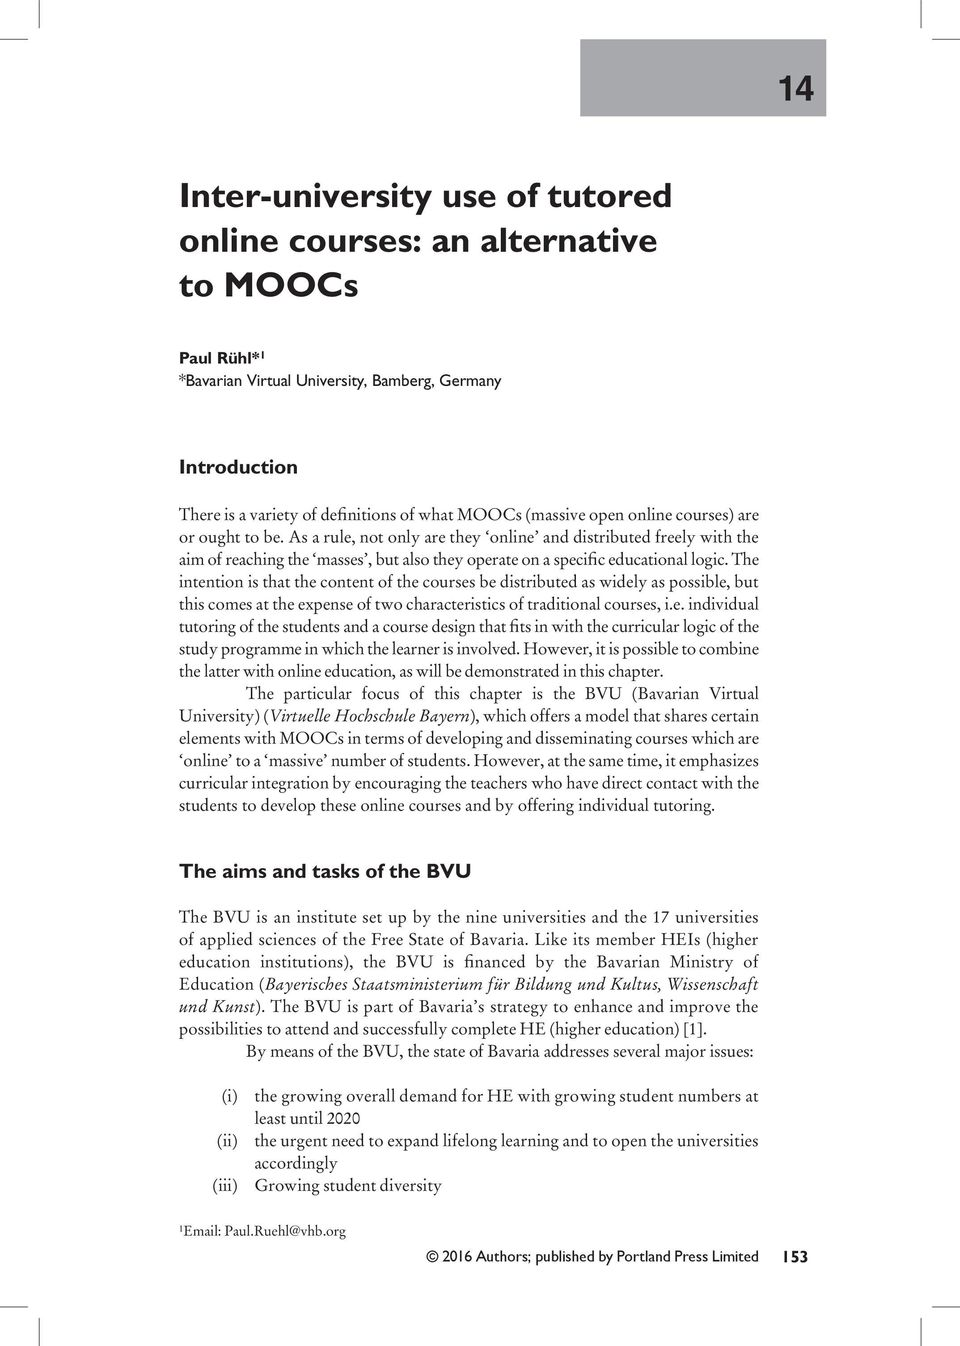 The intention is that the content of the courses be distributed as widely as possible, but this comes at the expense of two characteristics of traditional courses, i.e. individual tutoring of the students and a course design that fits in with the curricular logic of the study programme in which the learner is involved.